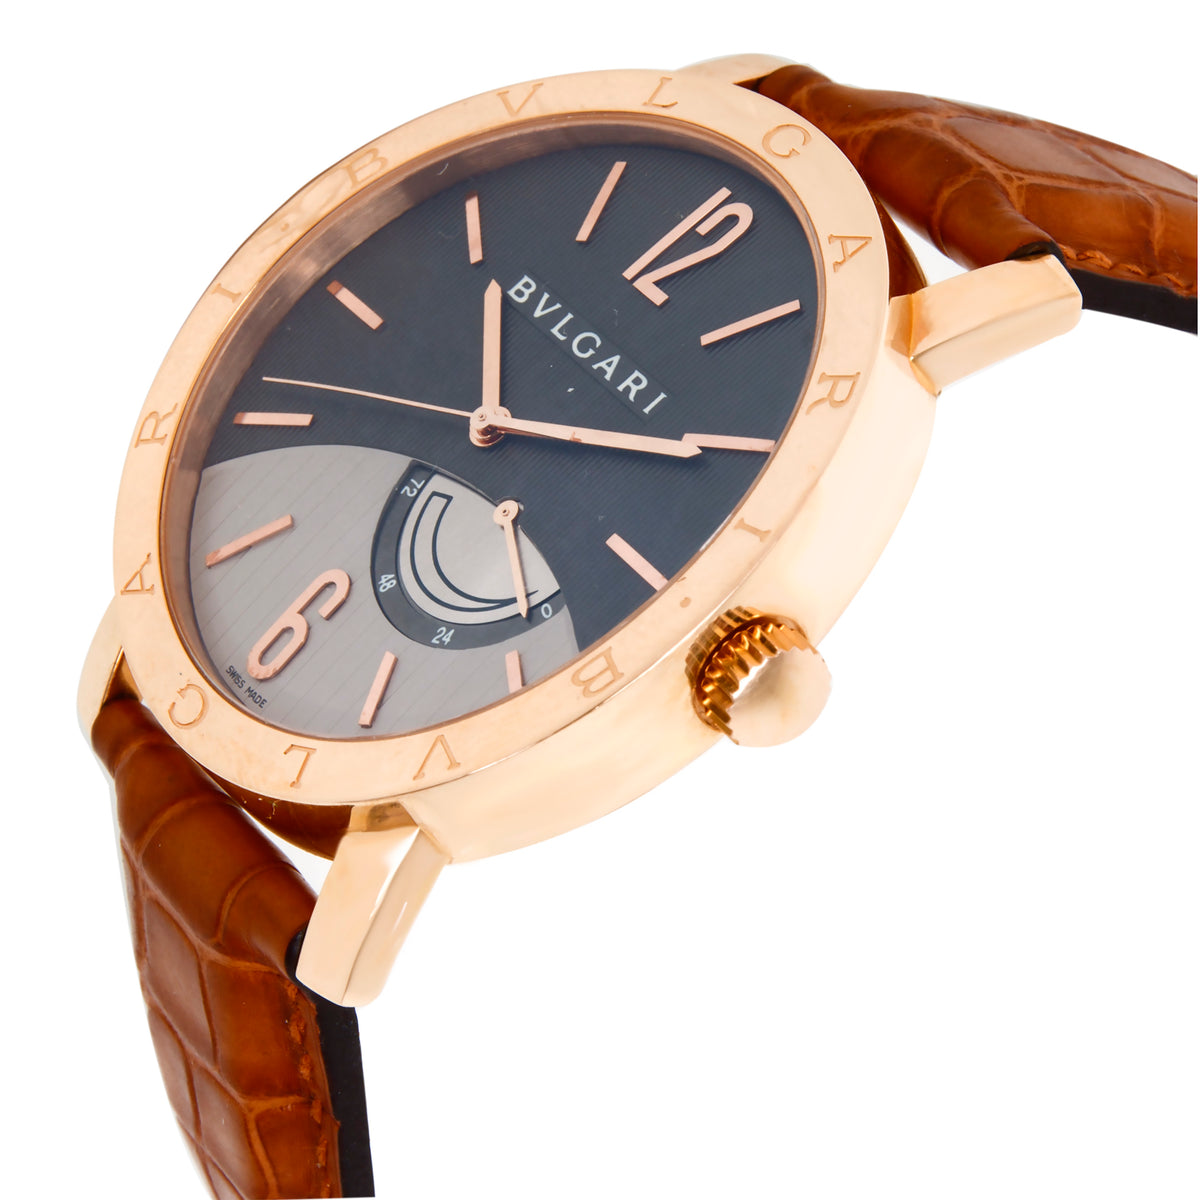 Bulgari Bvlgari Bvlgari BB P 41 GL Men's Watch in 18kt Rose Gold